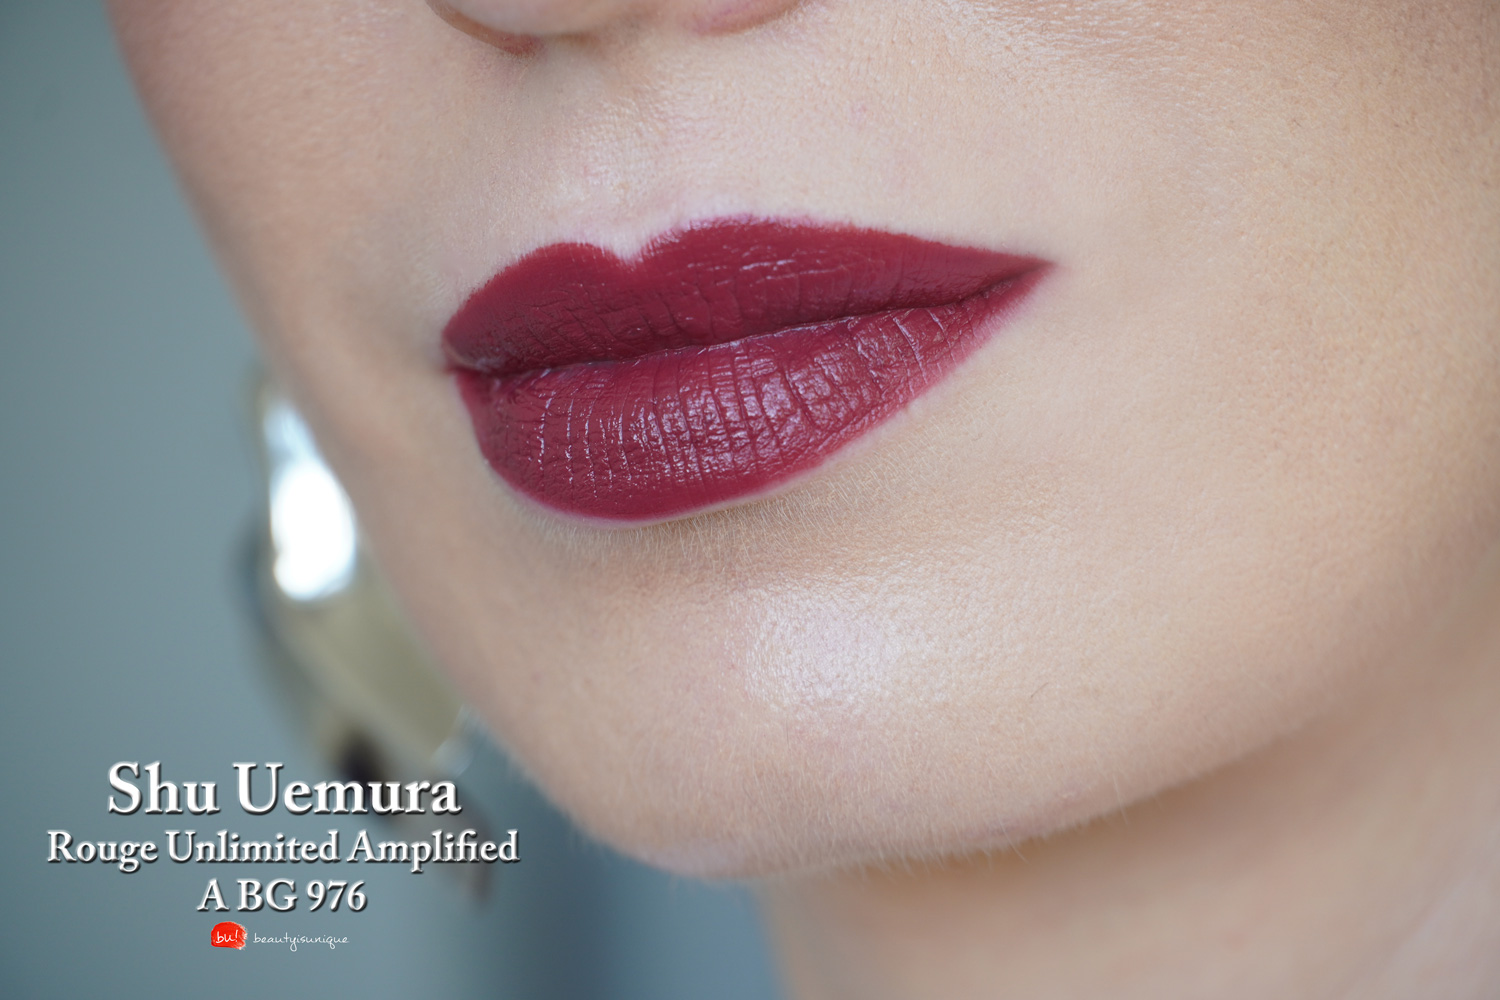 shu-uemura-rouge-unlimited-amplified-bg-976